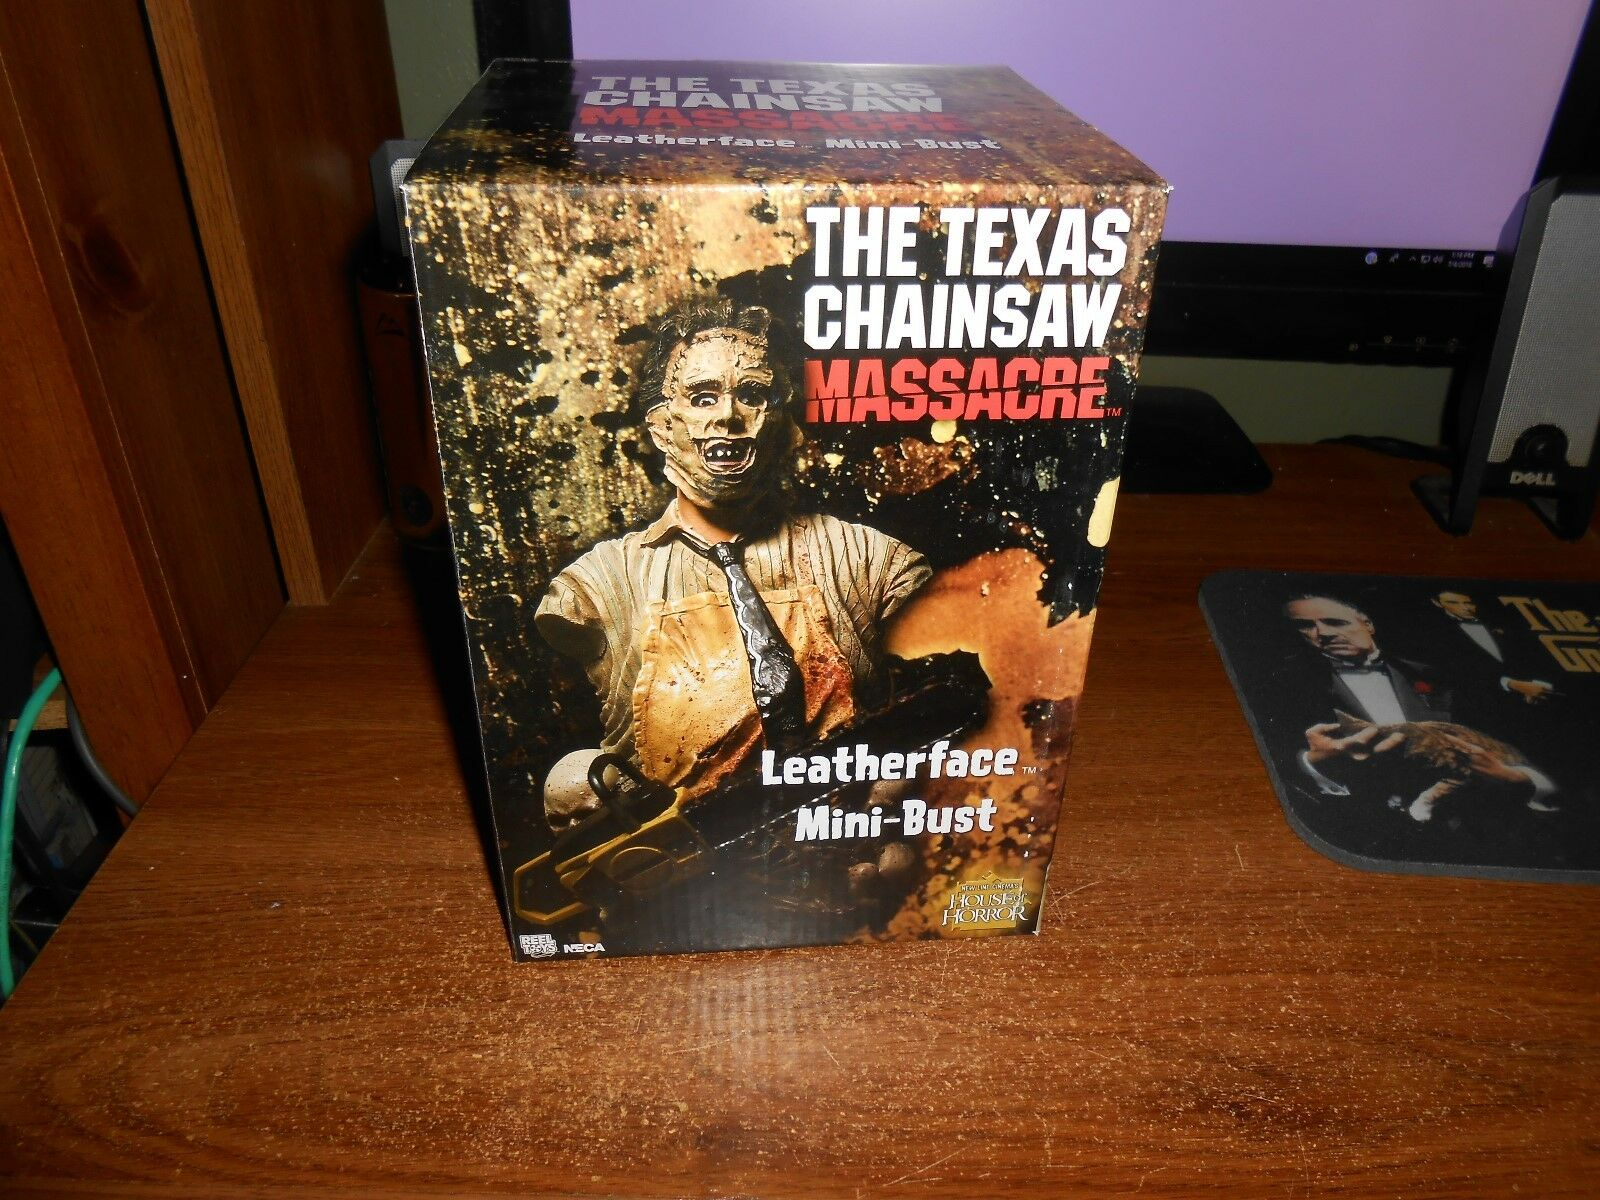 NECA TEXAS CHAINSAW MASSACRE MINI-BUST ONLY 1500N 1500N 1500N MADE L@@K BRAND NEW FREE SHIP  0bc29d